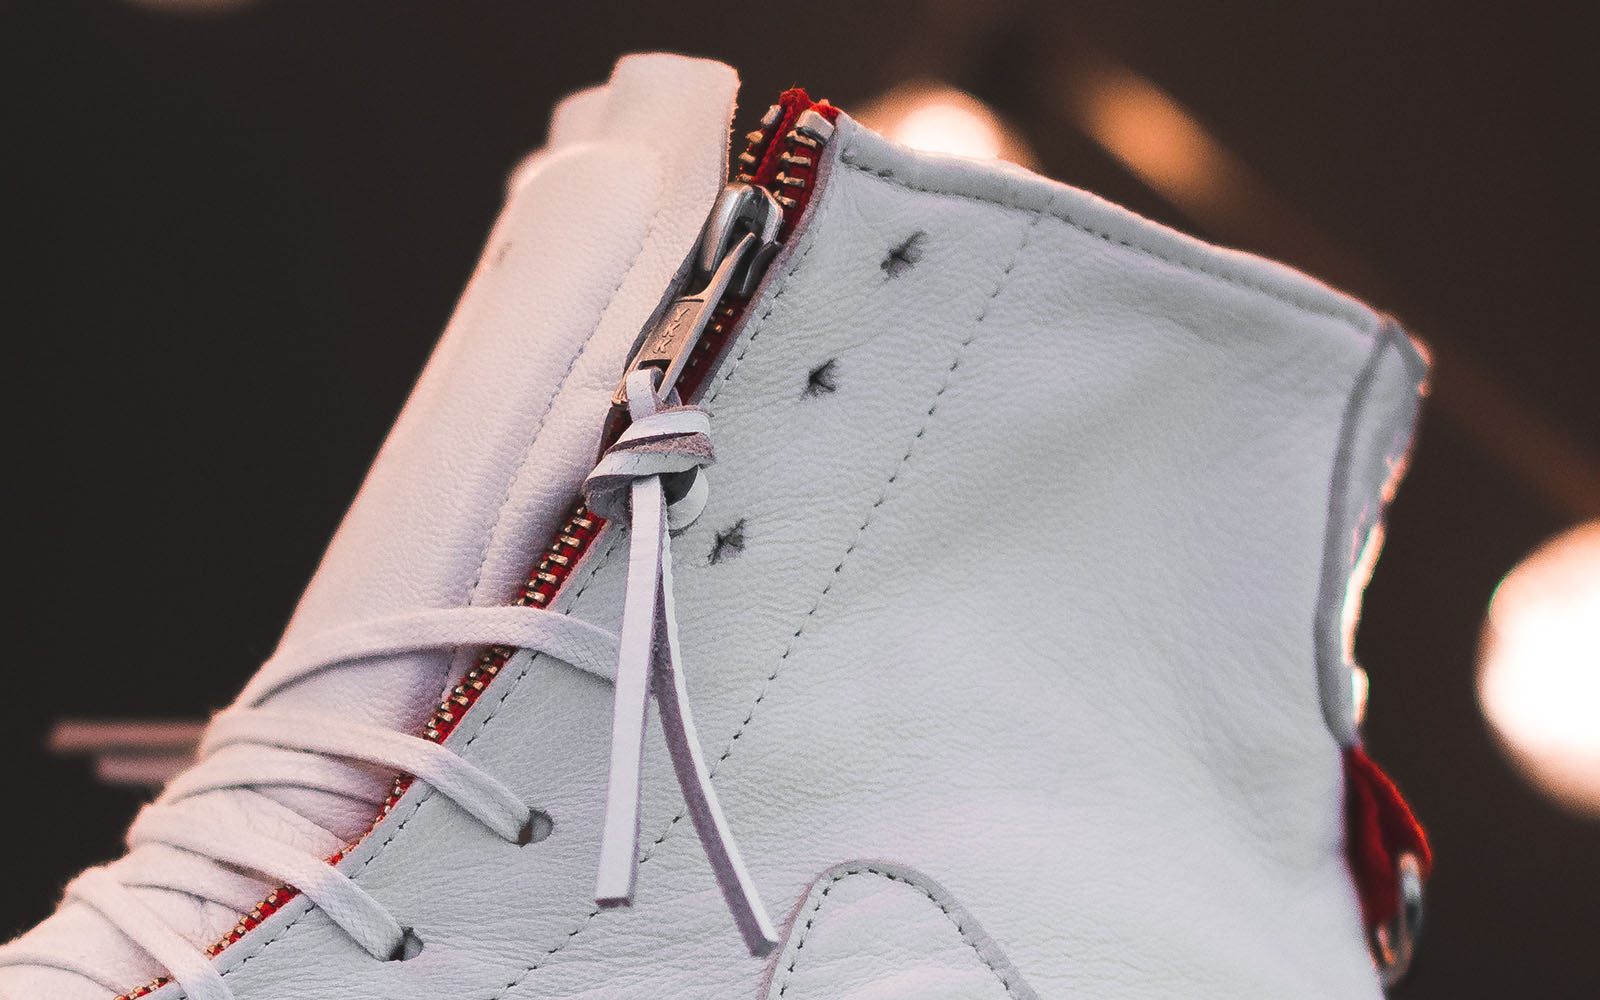 clearweather brand the clutch white hi-top zippers sneaker with stash pockets on thedrop